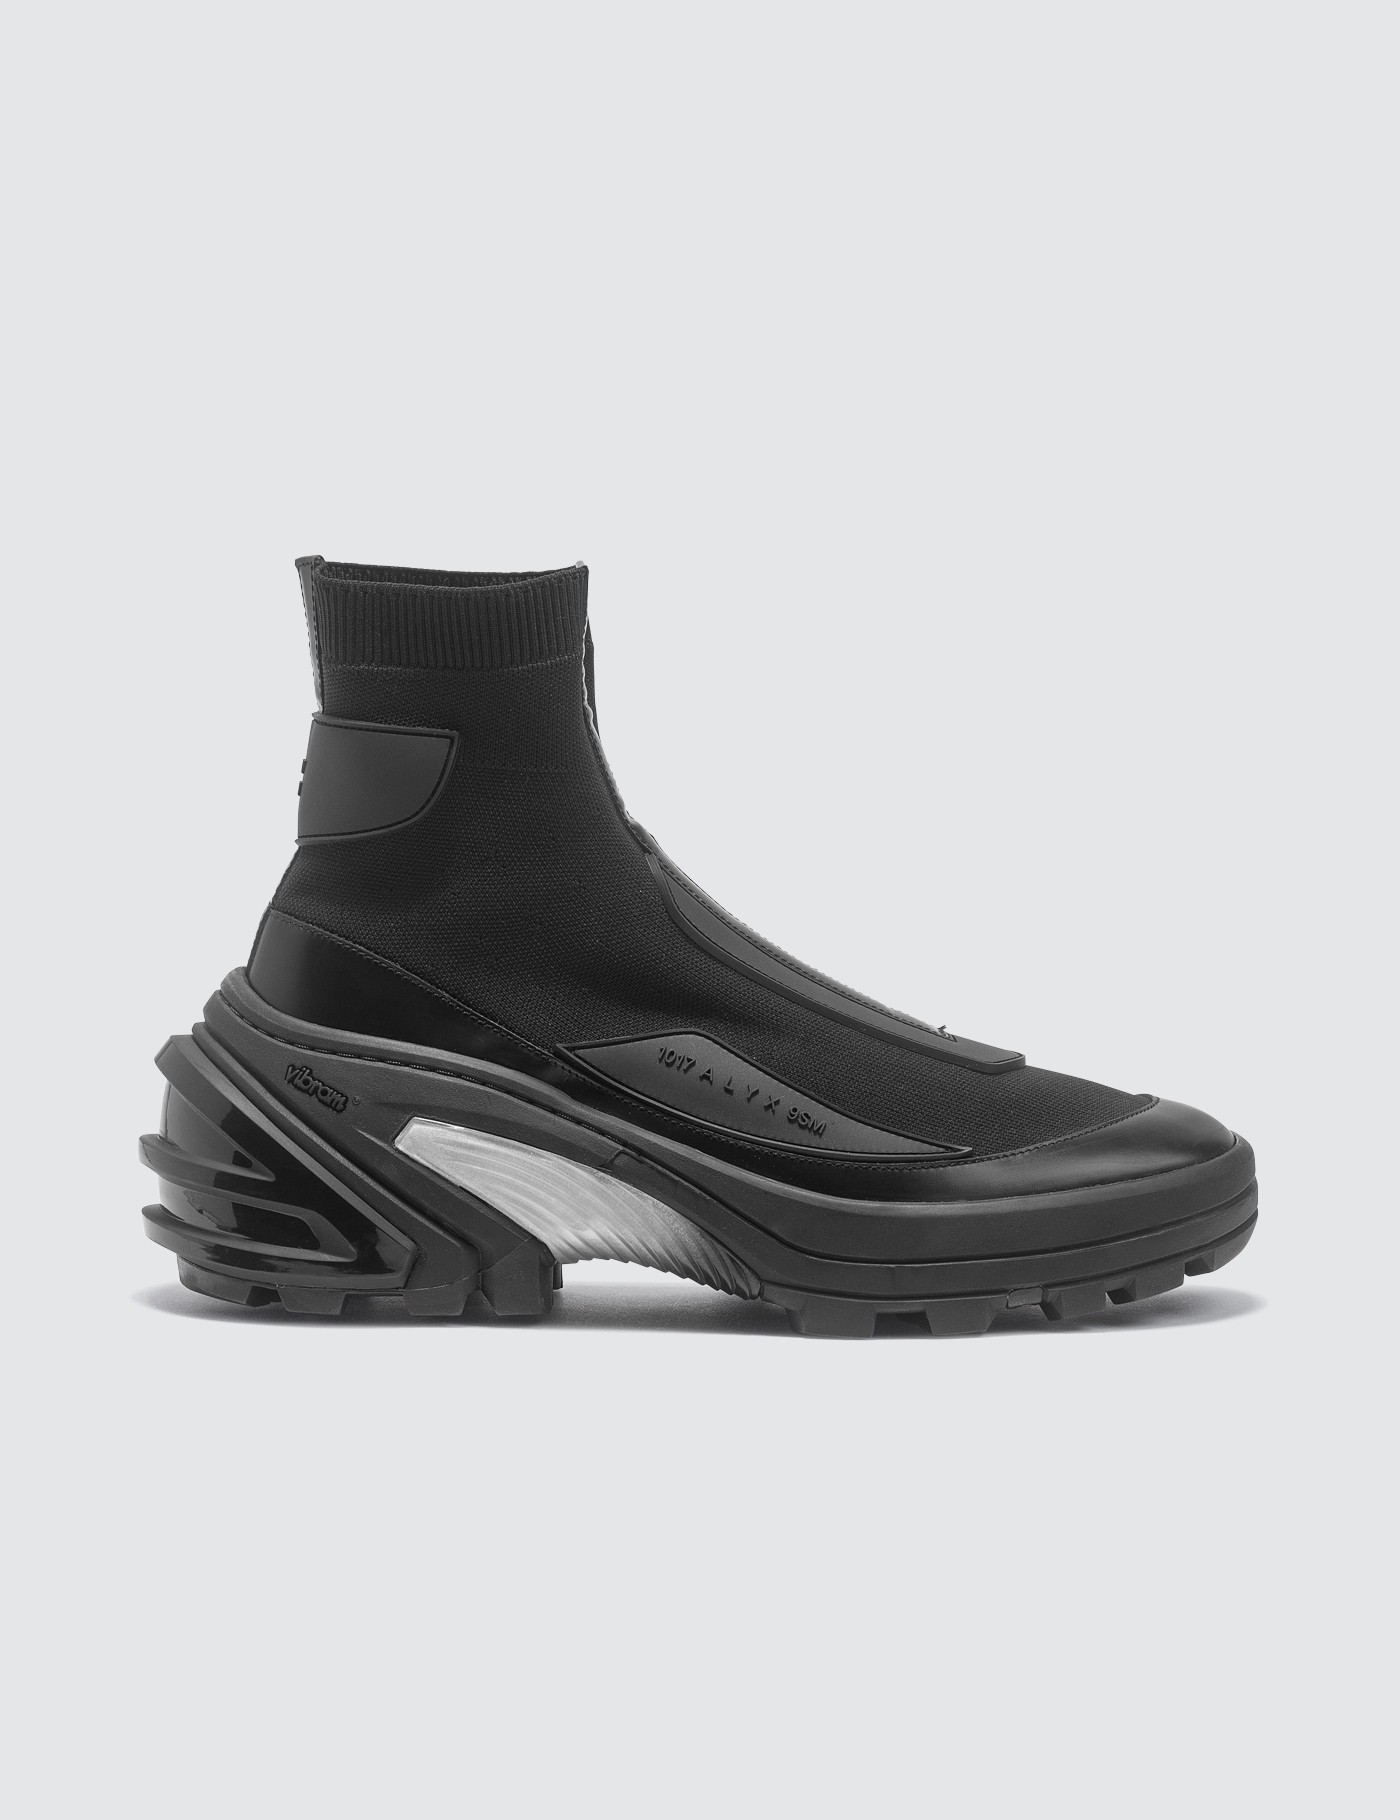 Chelsea Boots With Removable Vibram Sole